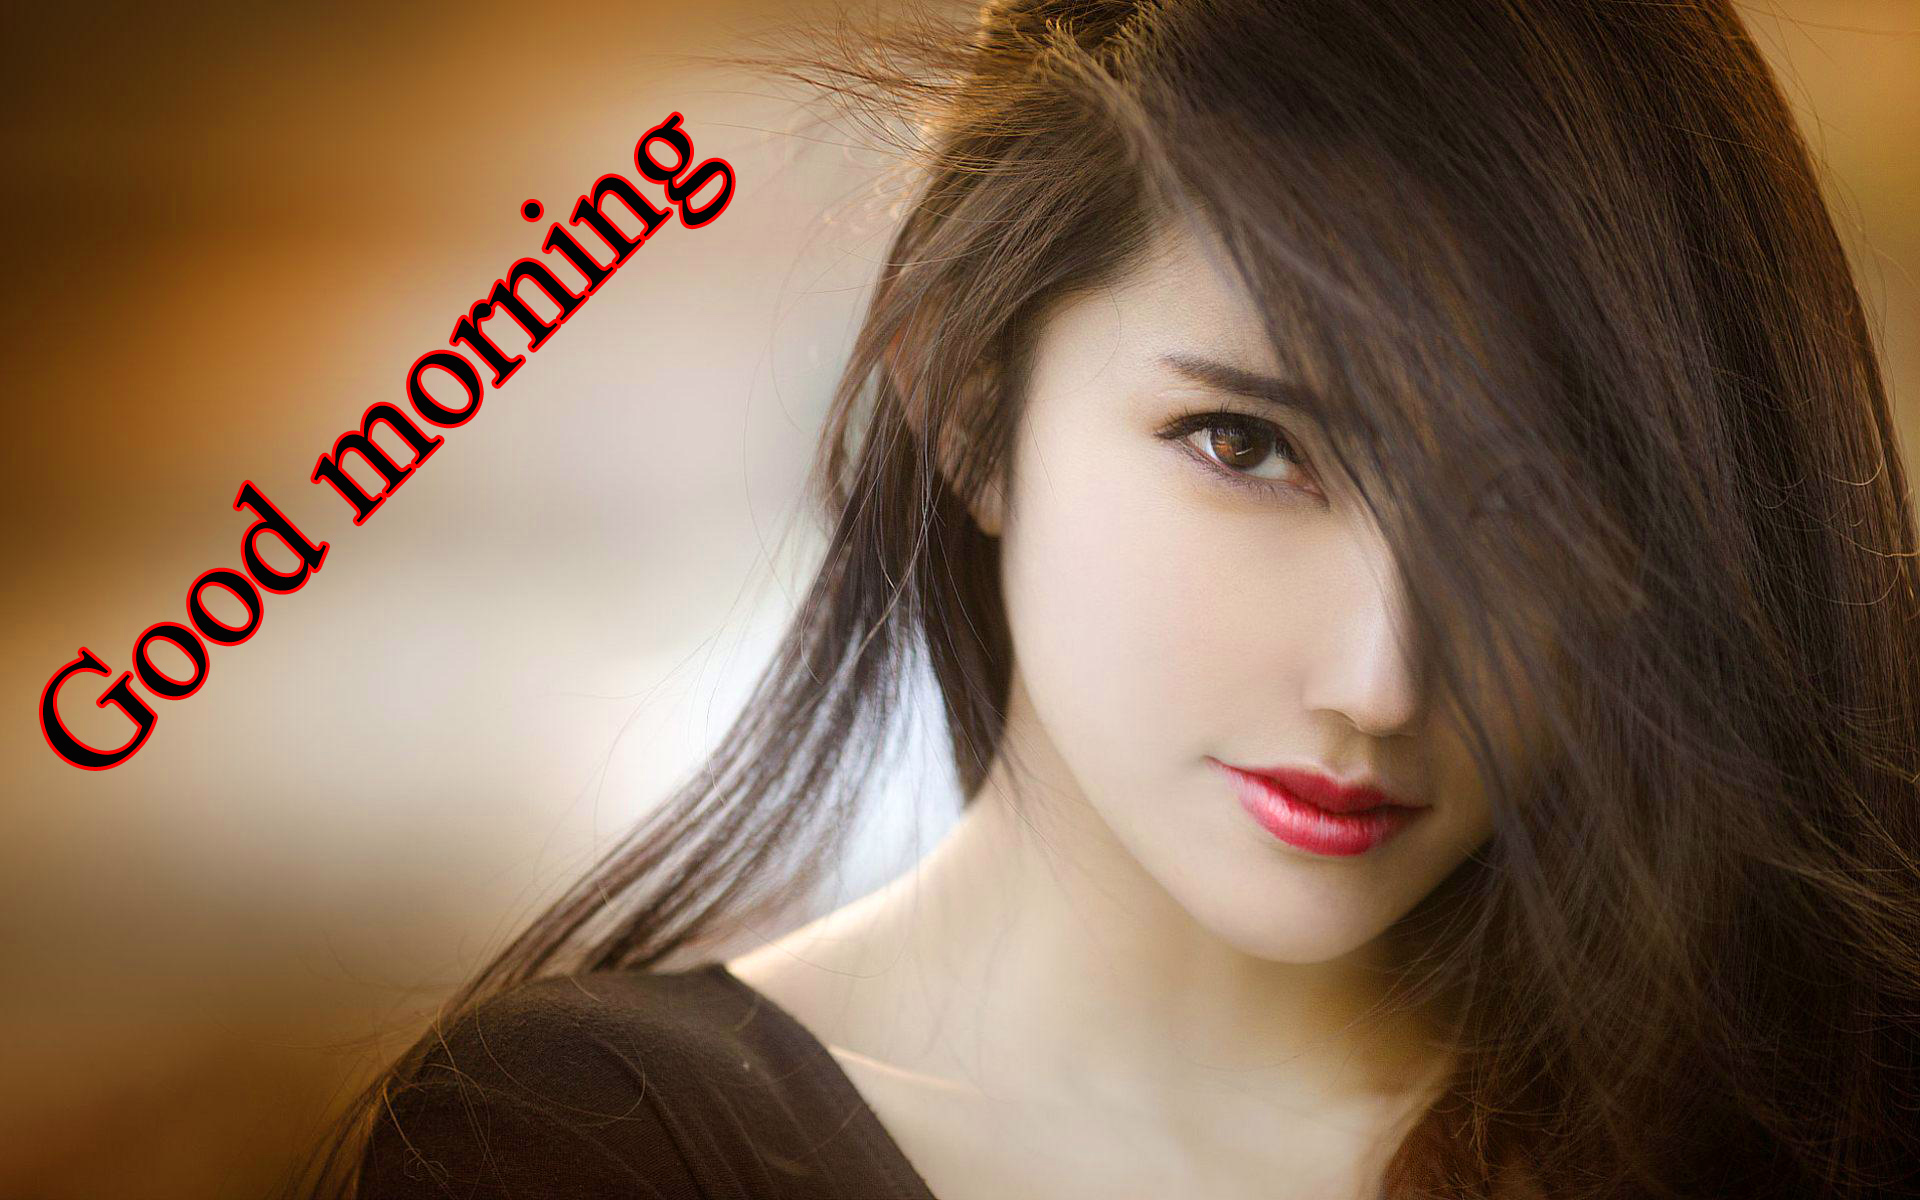 HD Good morning picture for the most beautiful girl in the world Images Pics HD Download